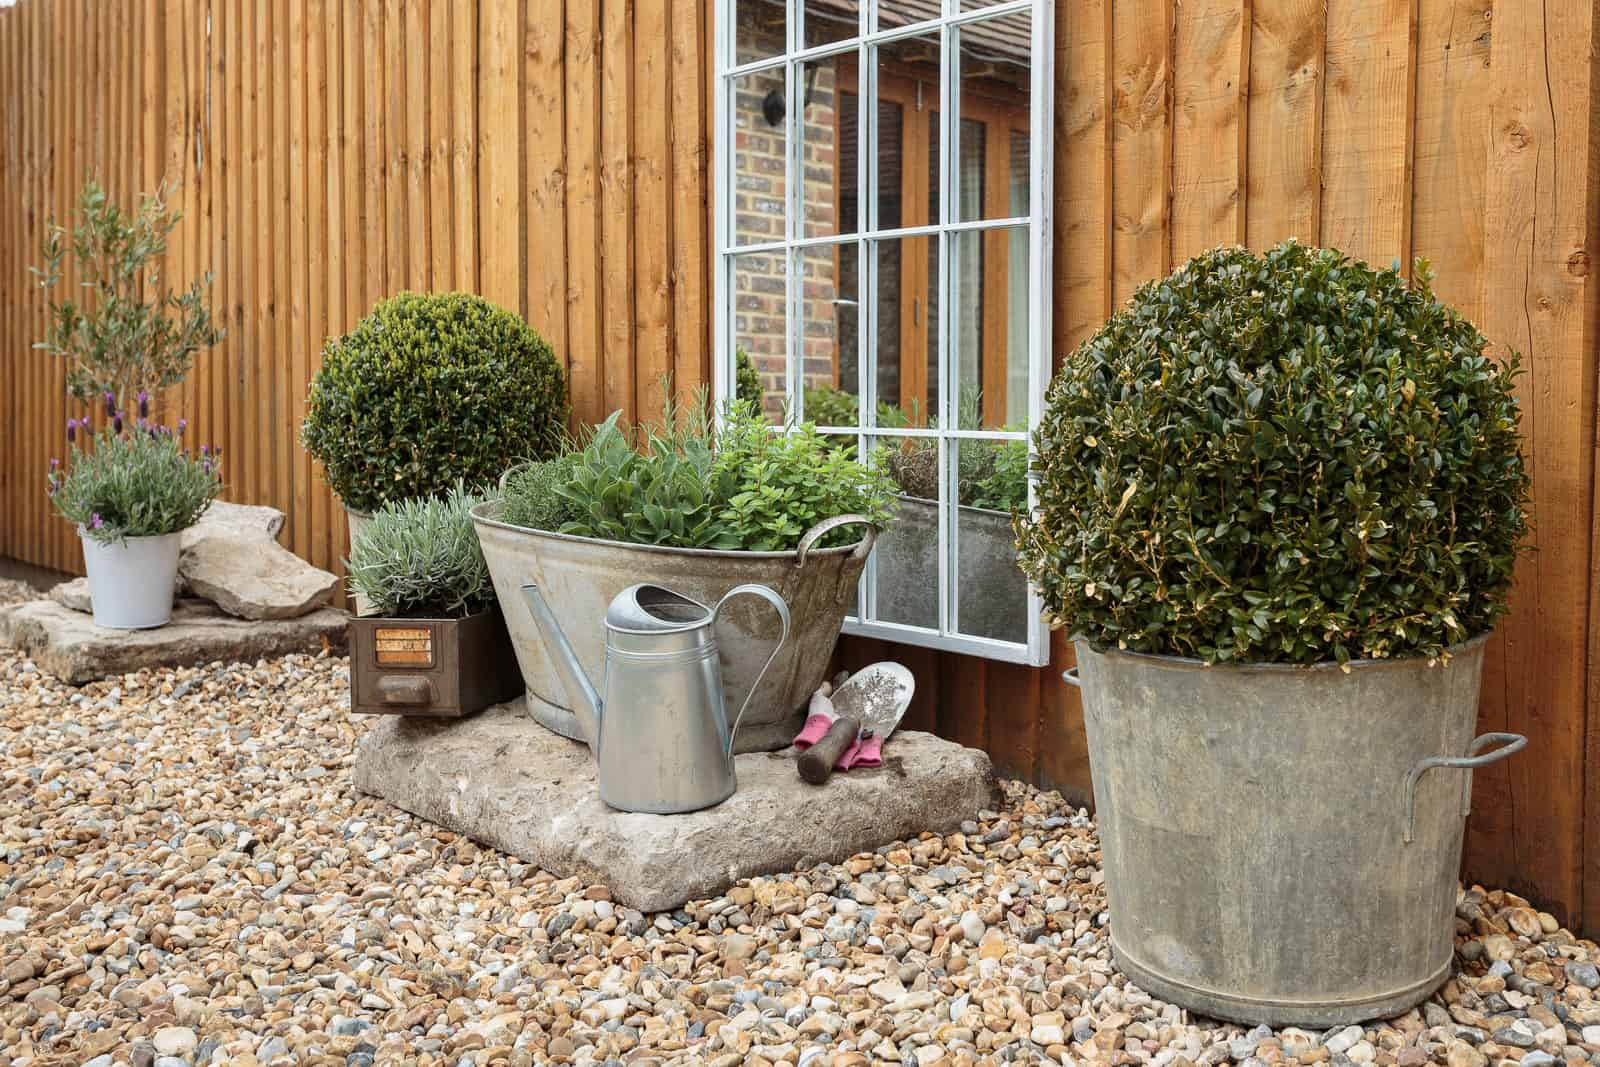 Ornamental bushes and plants in tin baths and containers on a shingle base